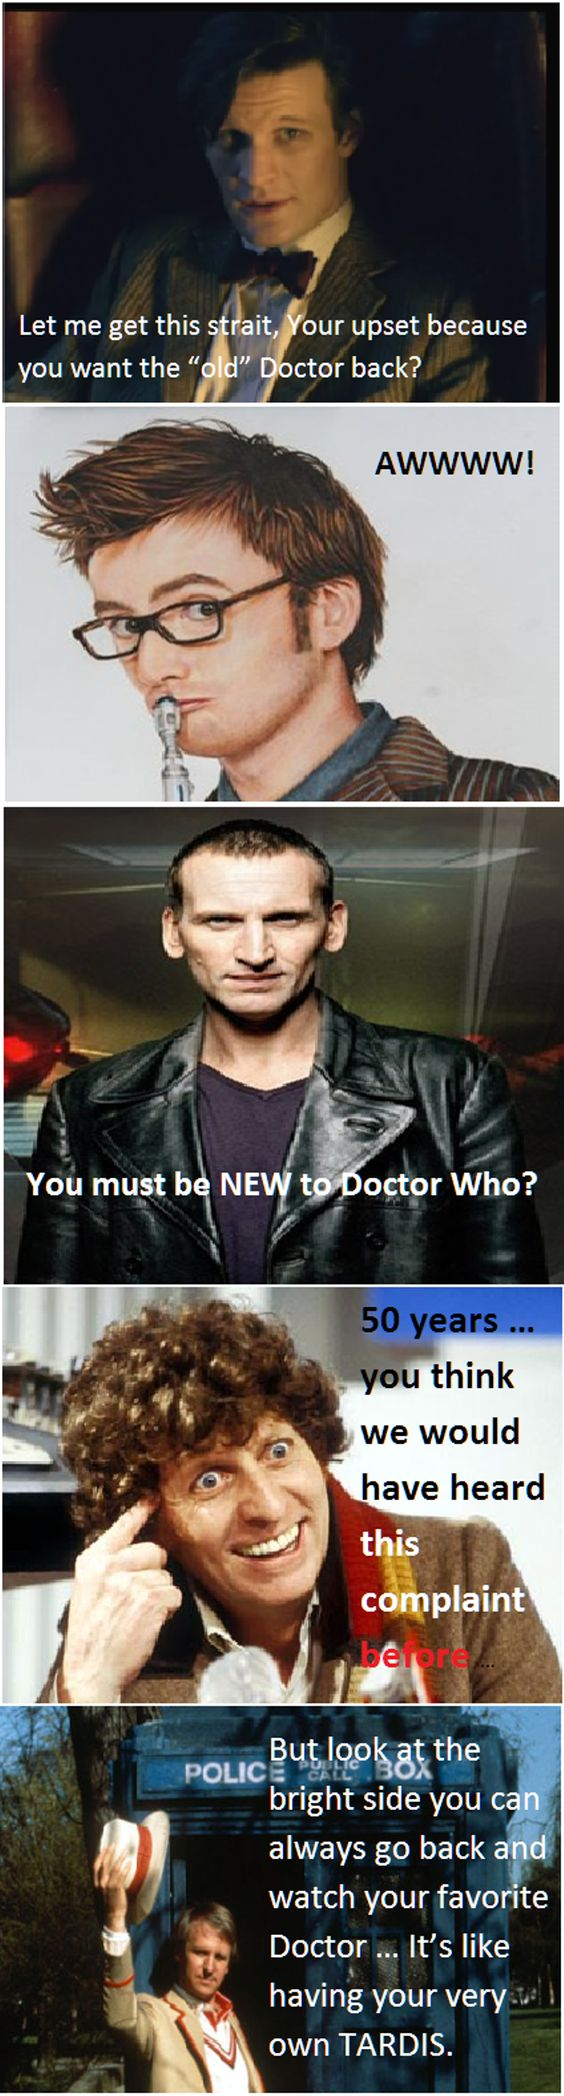 Still miss David Tennant's Doctor like crazy, but then again I also miss Christopher's, and Paul's, and Sylvester's, and Colin's, and Peter's, and Tom's, and John's, and Patrick's, and Billy's... and sometime in the next year I'm going to miss Matt's, too. But I feel encouraged knowing that the Doctors view it as having my very own TARDIS.